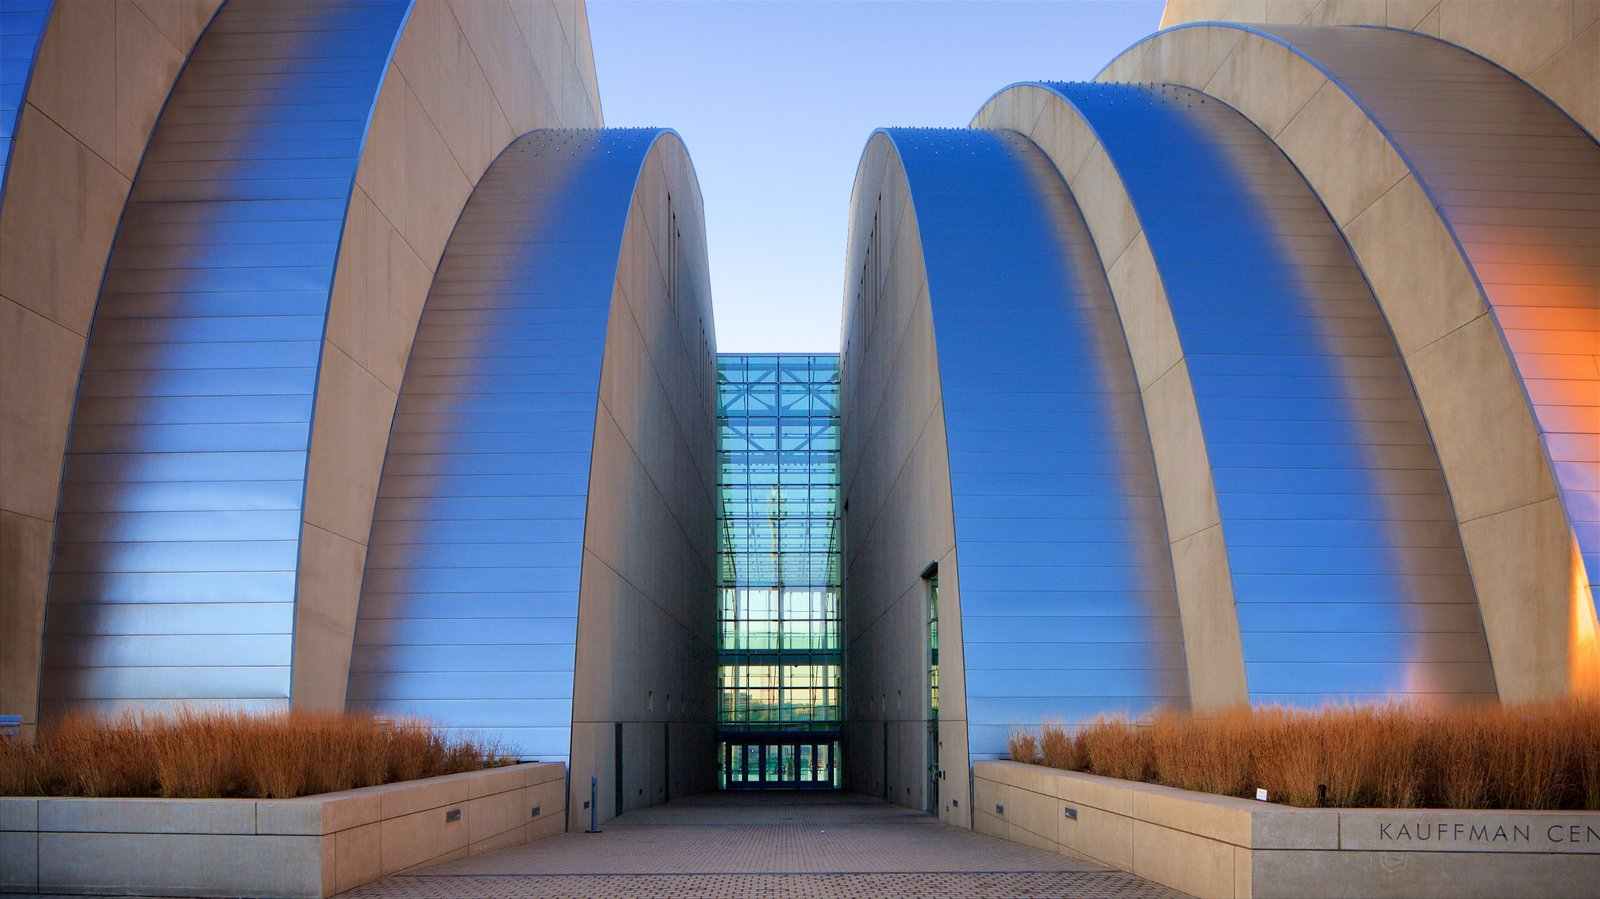 Kauffman Center for the Performing Arts featuring modern architecture